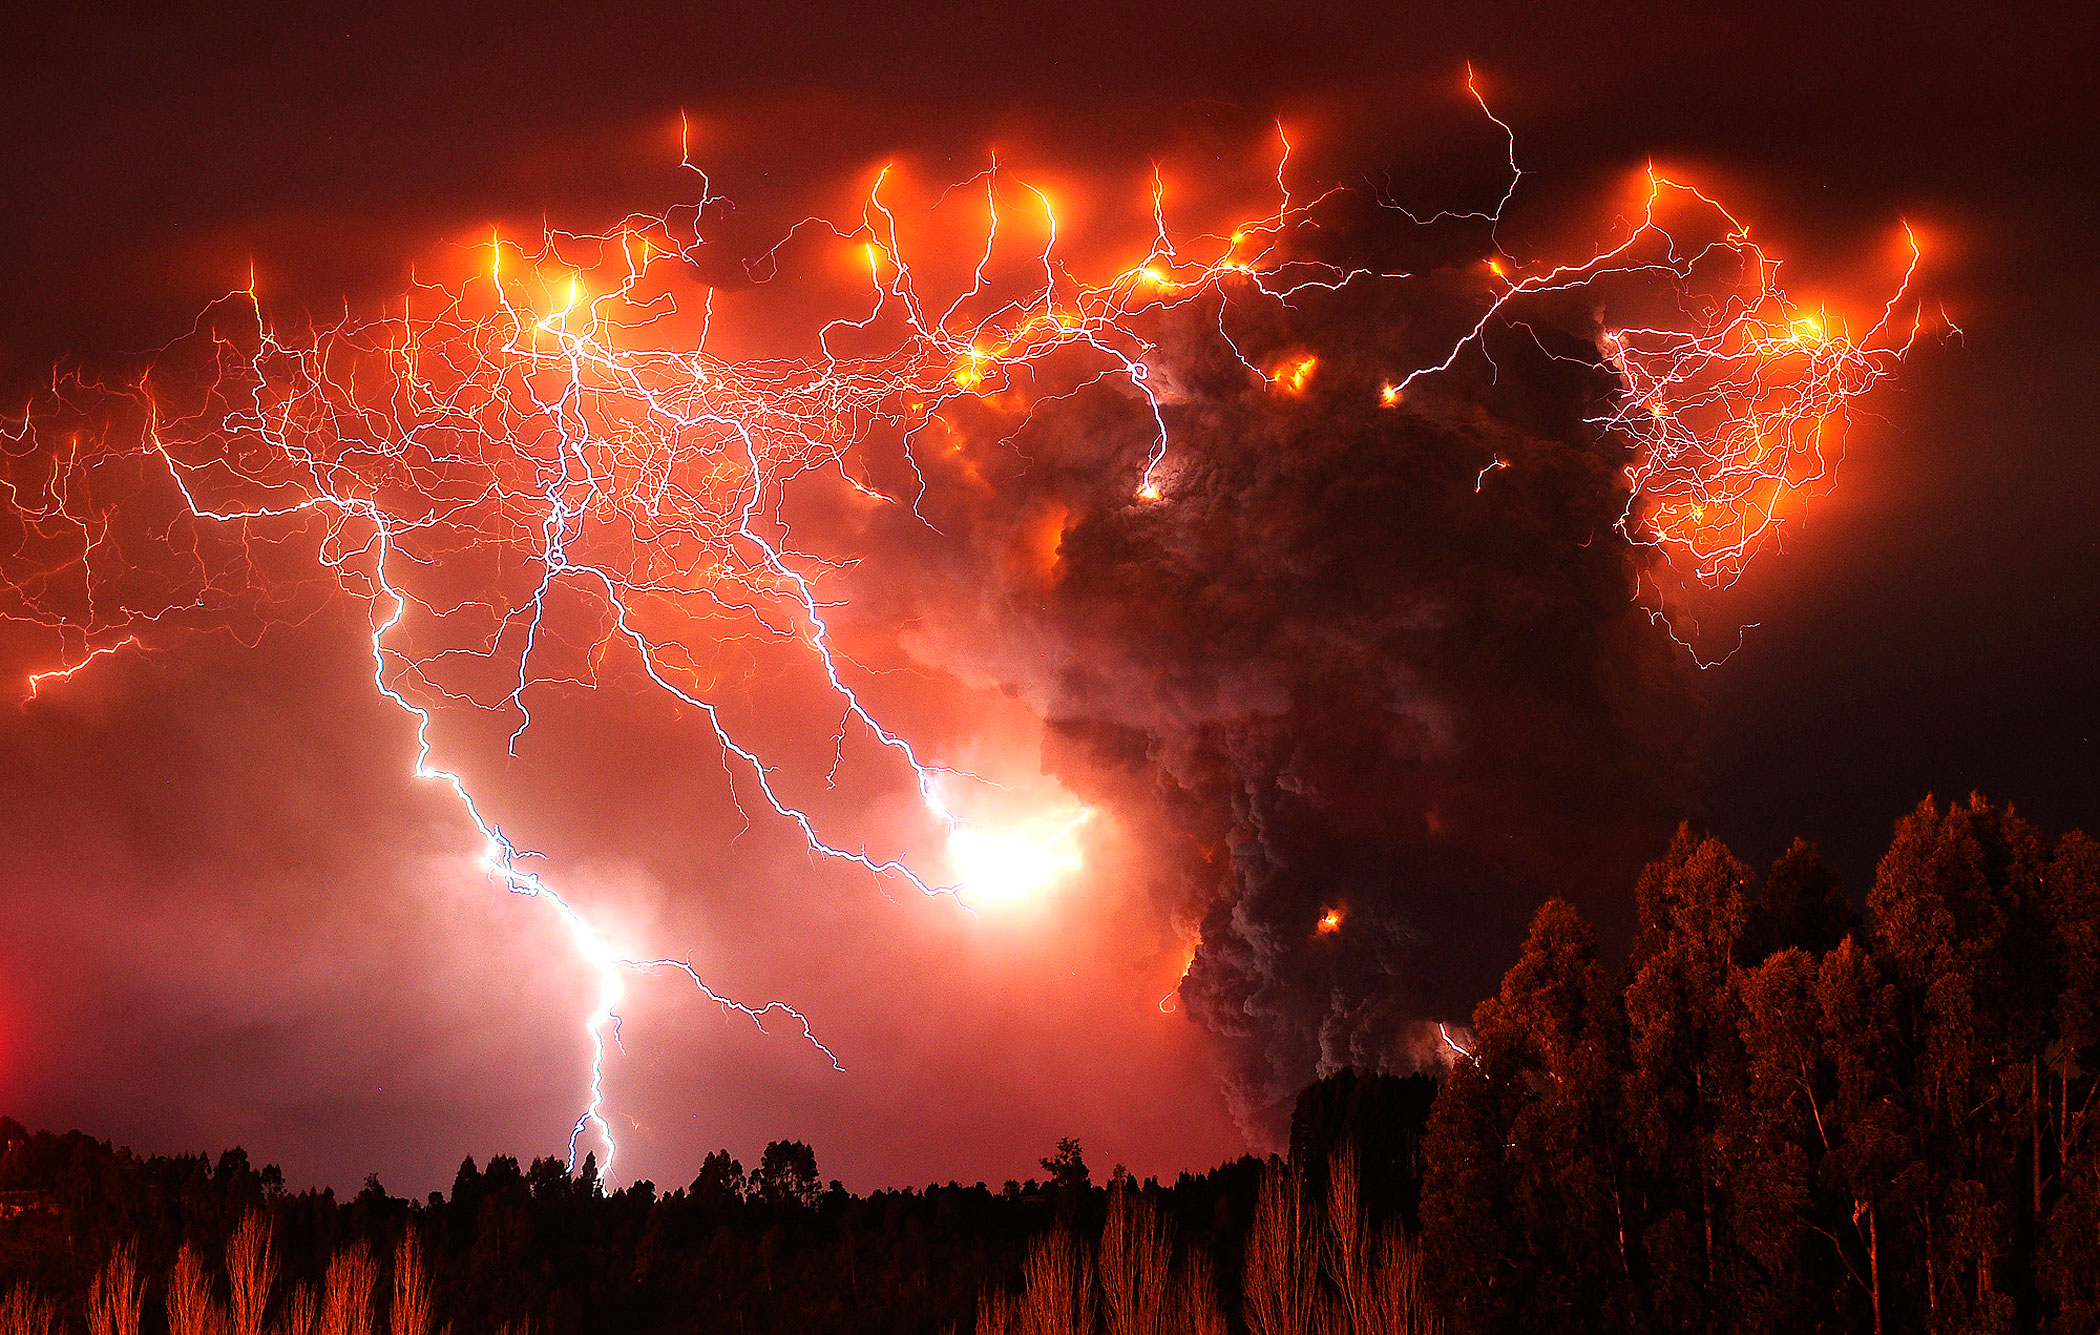 Lightning strikes over the Puyehue volcano, over 500 miles south of Santiago, Chile, June 6, 2011.